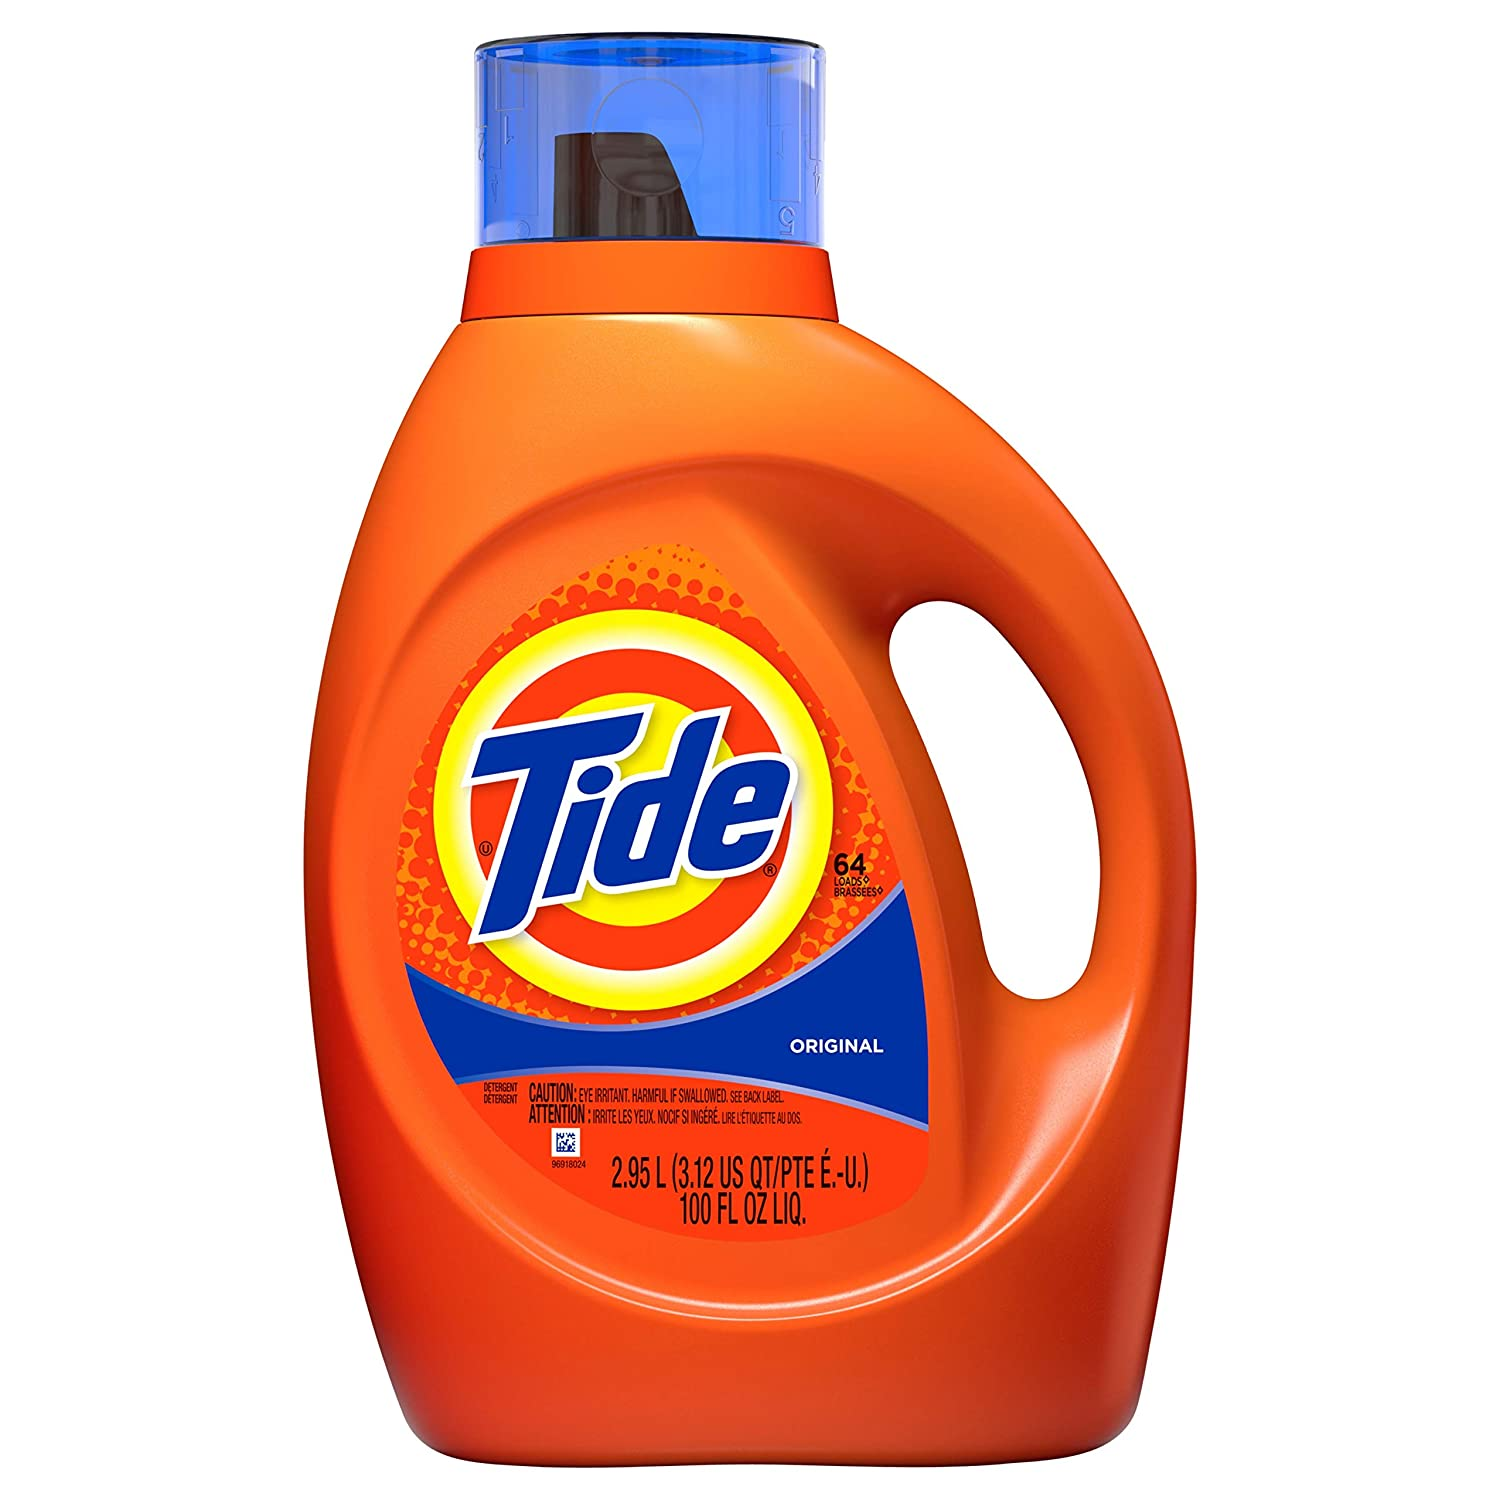 Tide Original Scent Liquid Laundry Detergent, 100 Fl Oz (Packaging May Vary) thomaswi